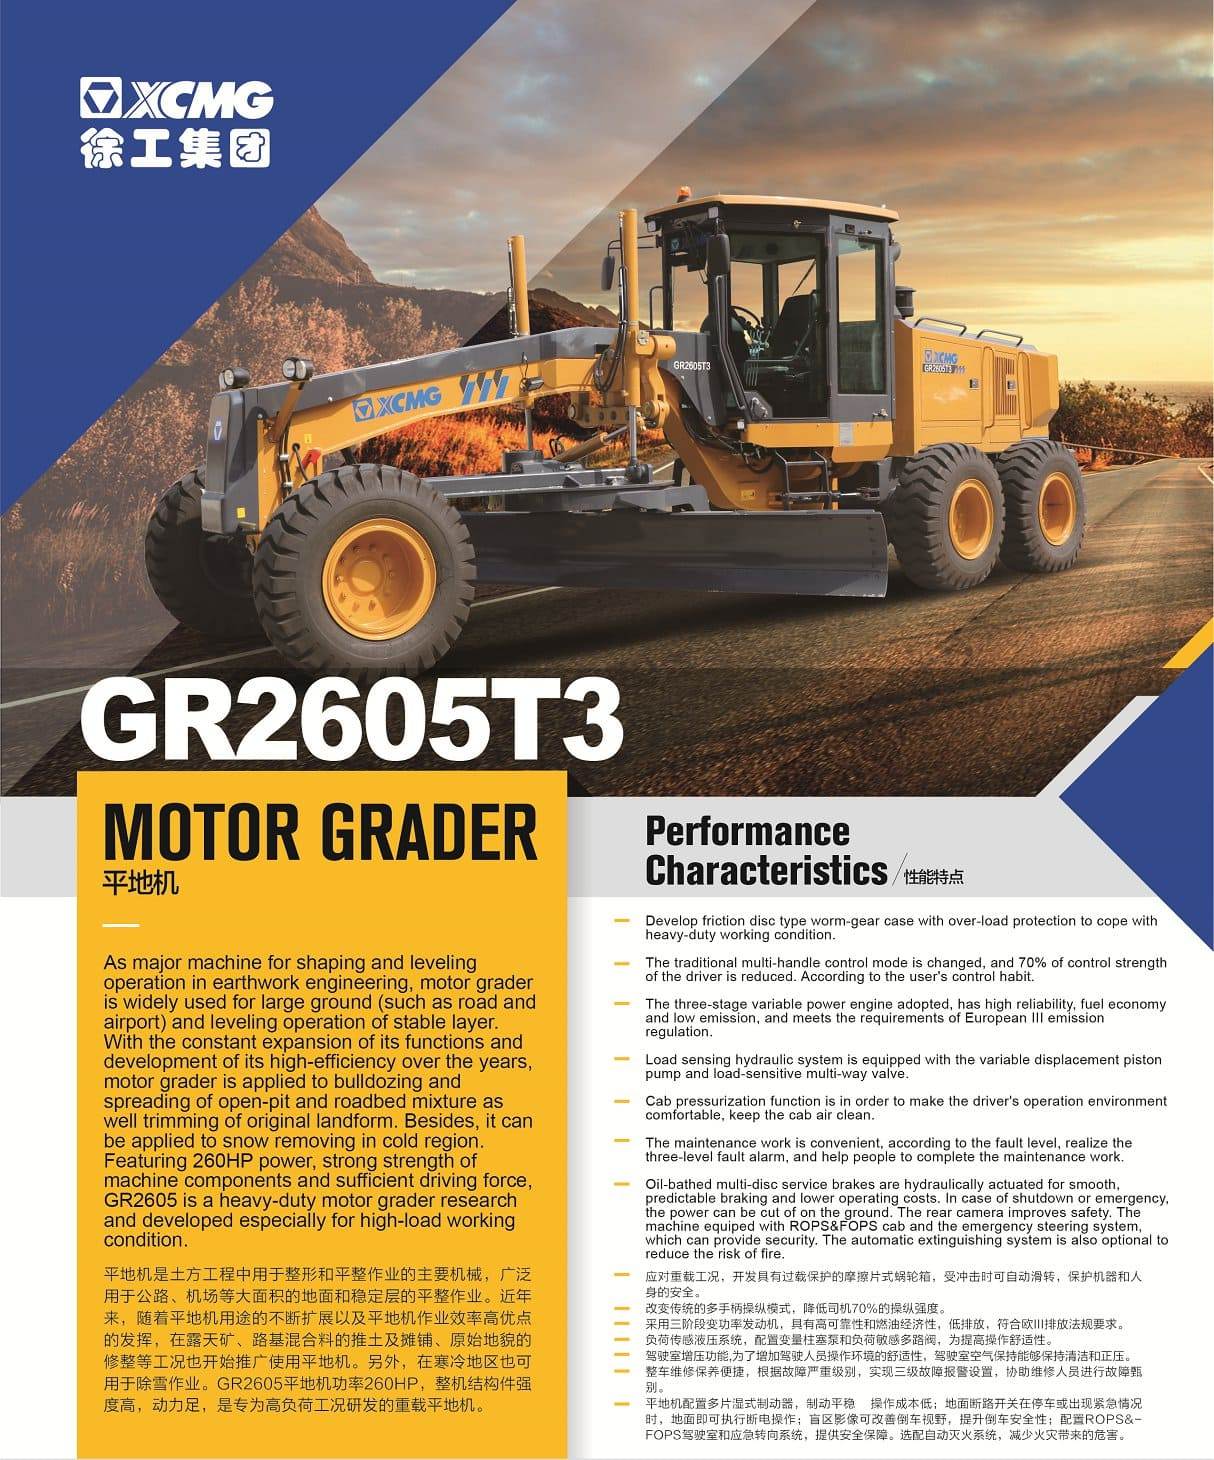 XCMG Official GR2605T3 Motor Grader for sale